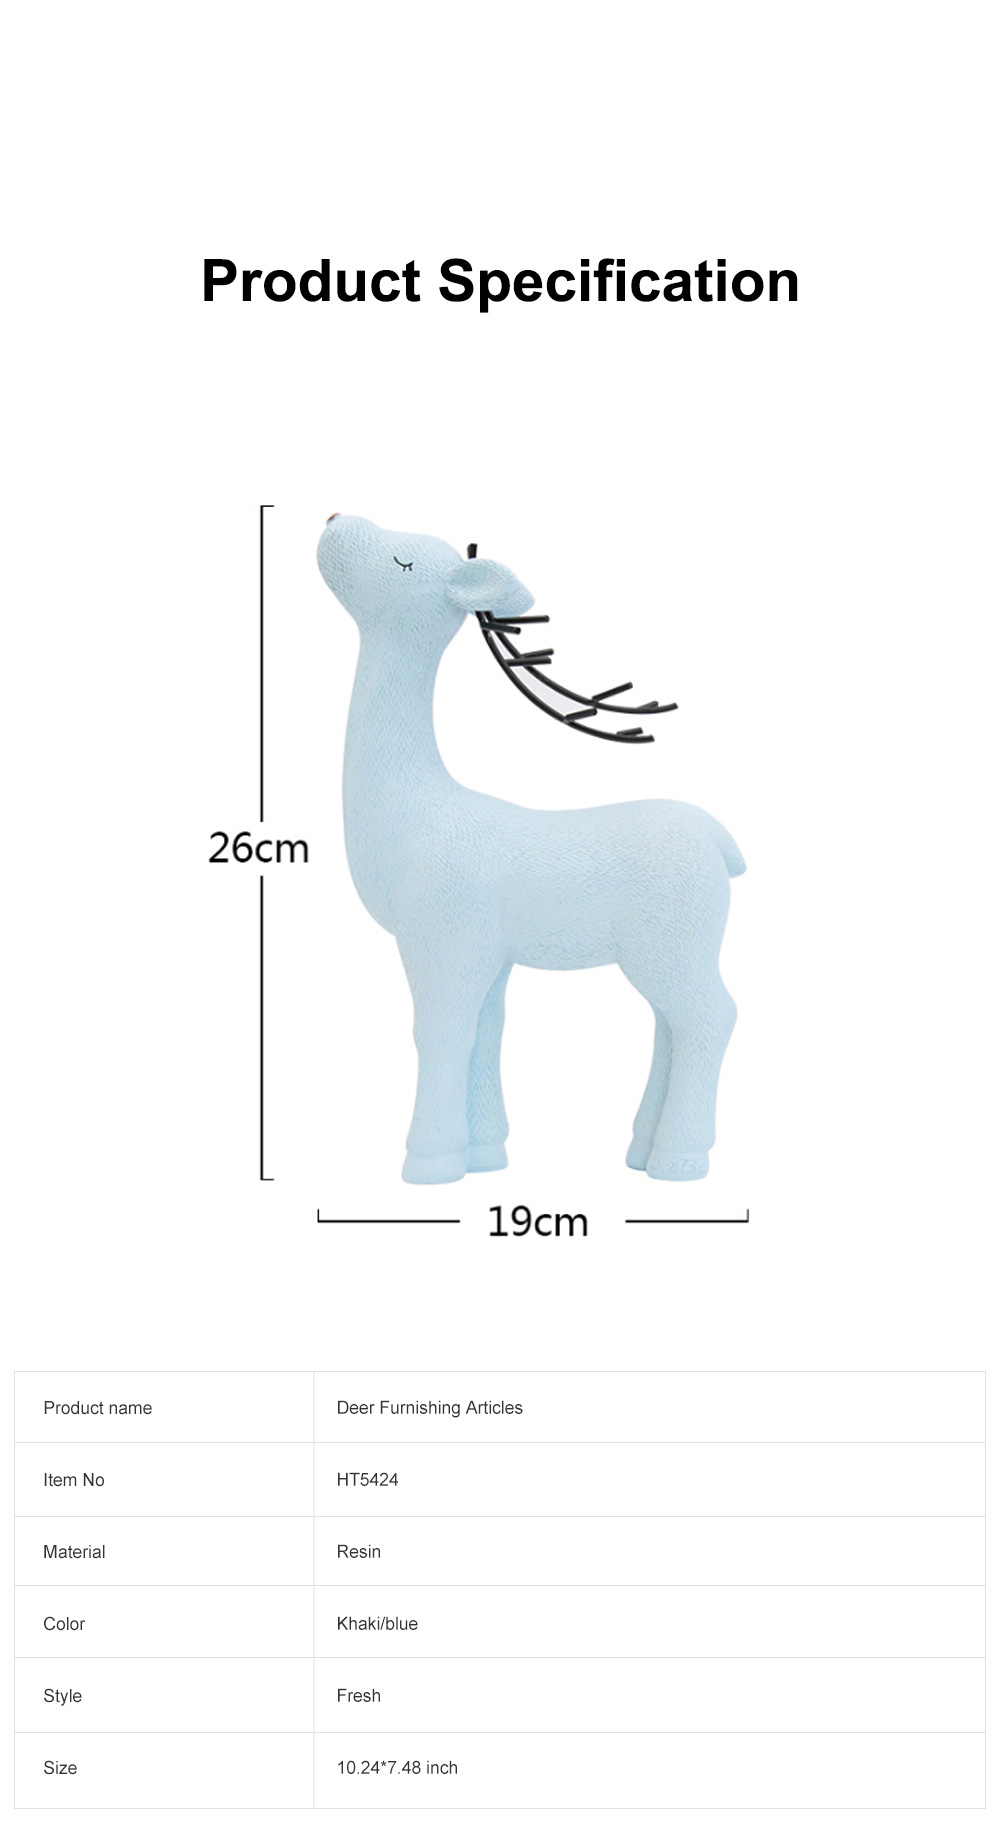 Crafts Decorative Deer Nordic Style Resin Deer Household Decoration for Living Room Bedroom and Office Decoration 5